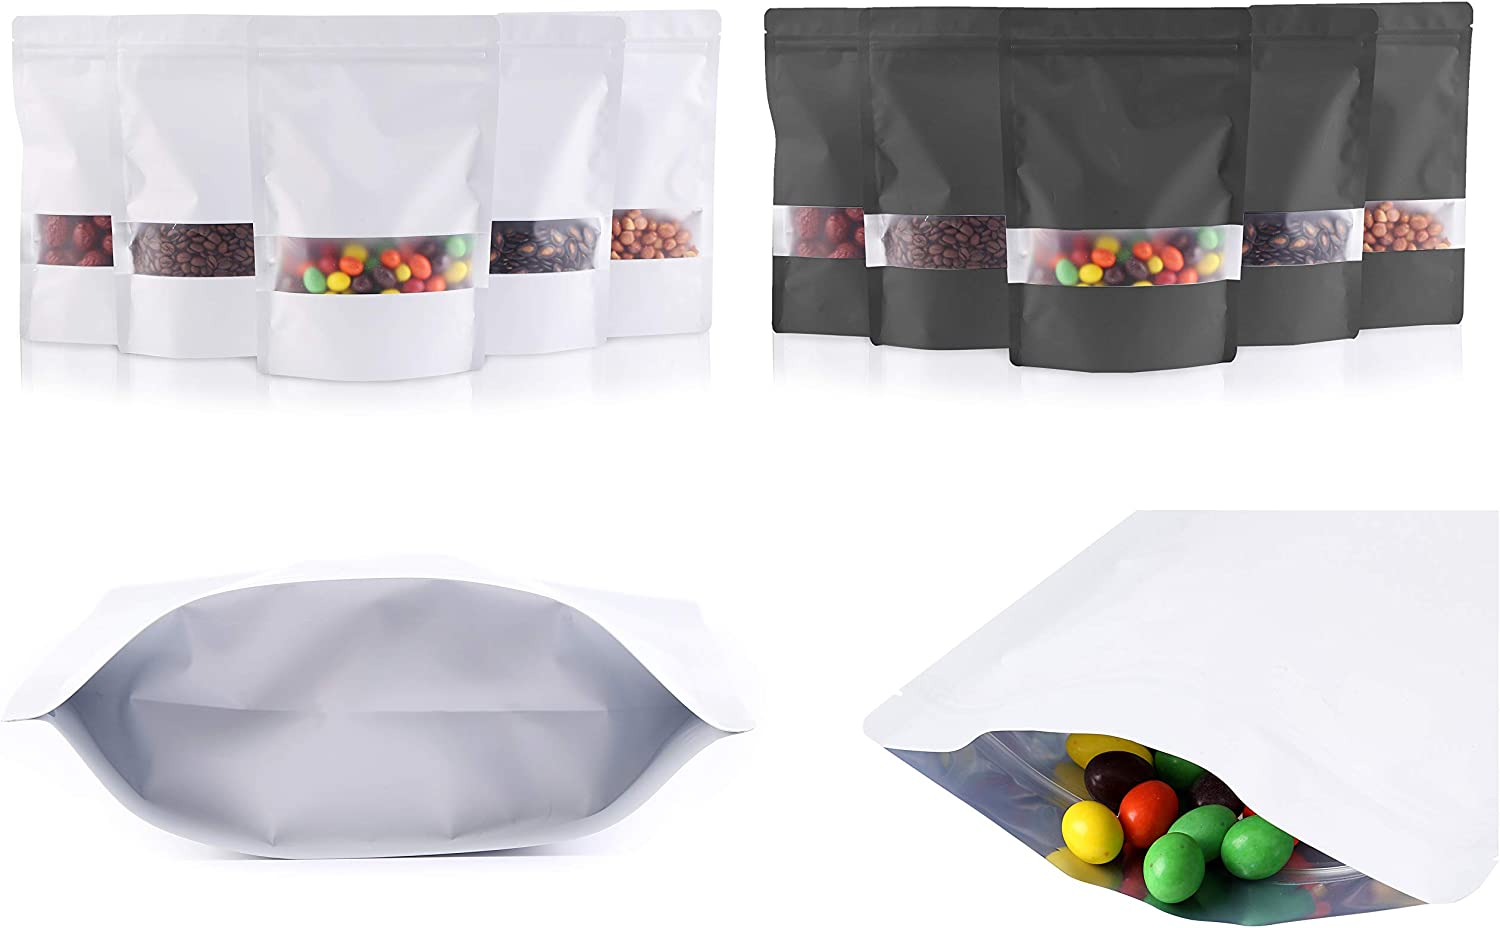 Big Size Black and White Mylar Ziplock Bag Smell Proof Food Storage Bags with Clear Window Display Stand-Up Pouch Heat Sealable Ziplock Bag (25 Black and 25 White)